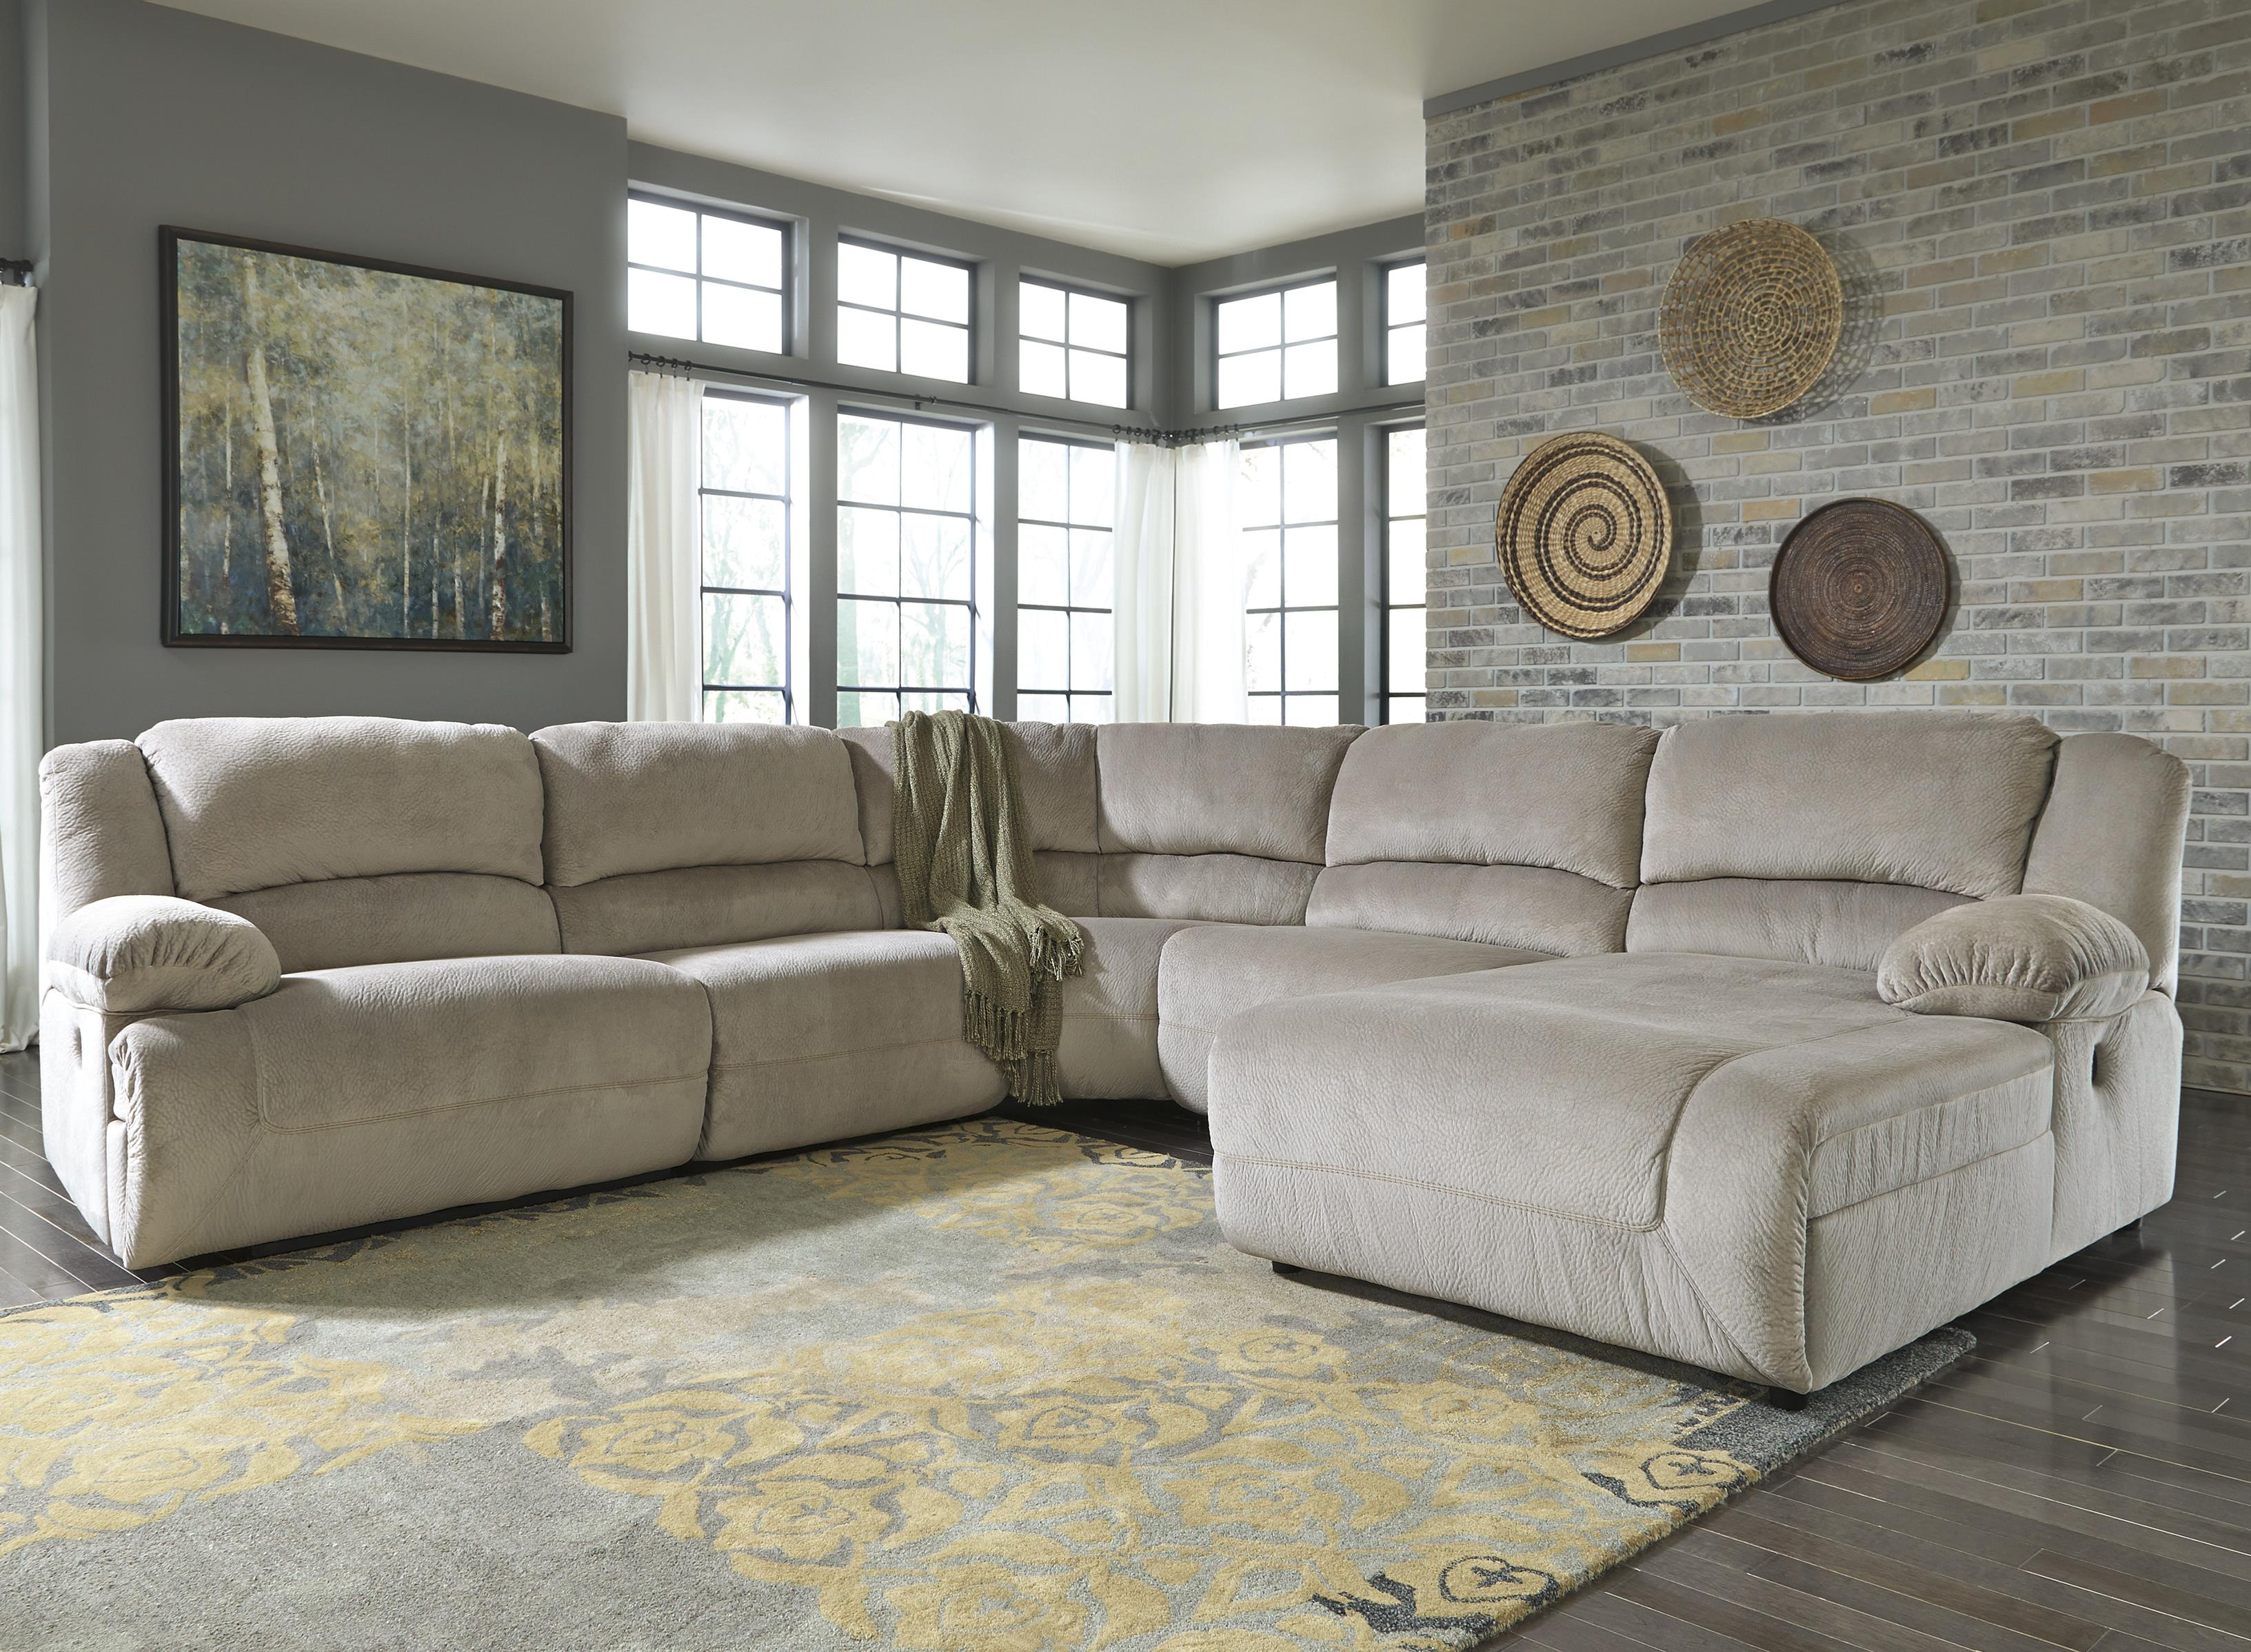 Signature Design by Ashley Toletta - Granite Power Reclining Sectional with Chaise - Item Number: 5670358+19+77+46+97